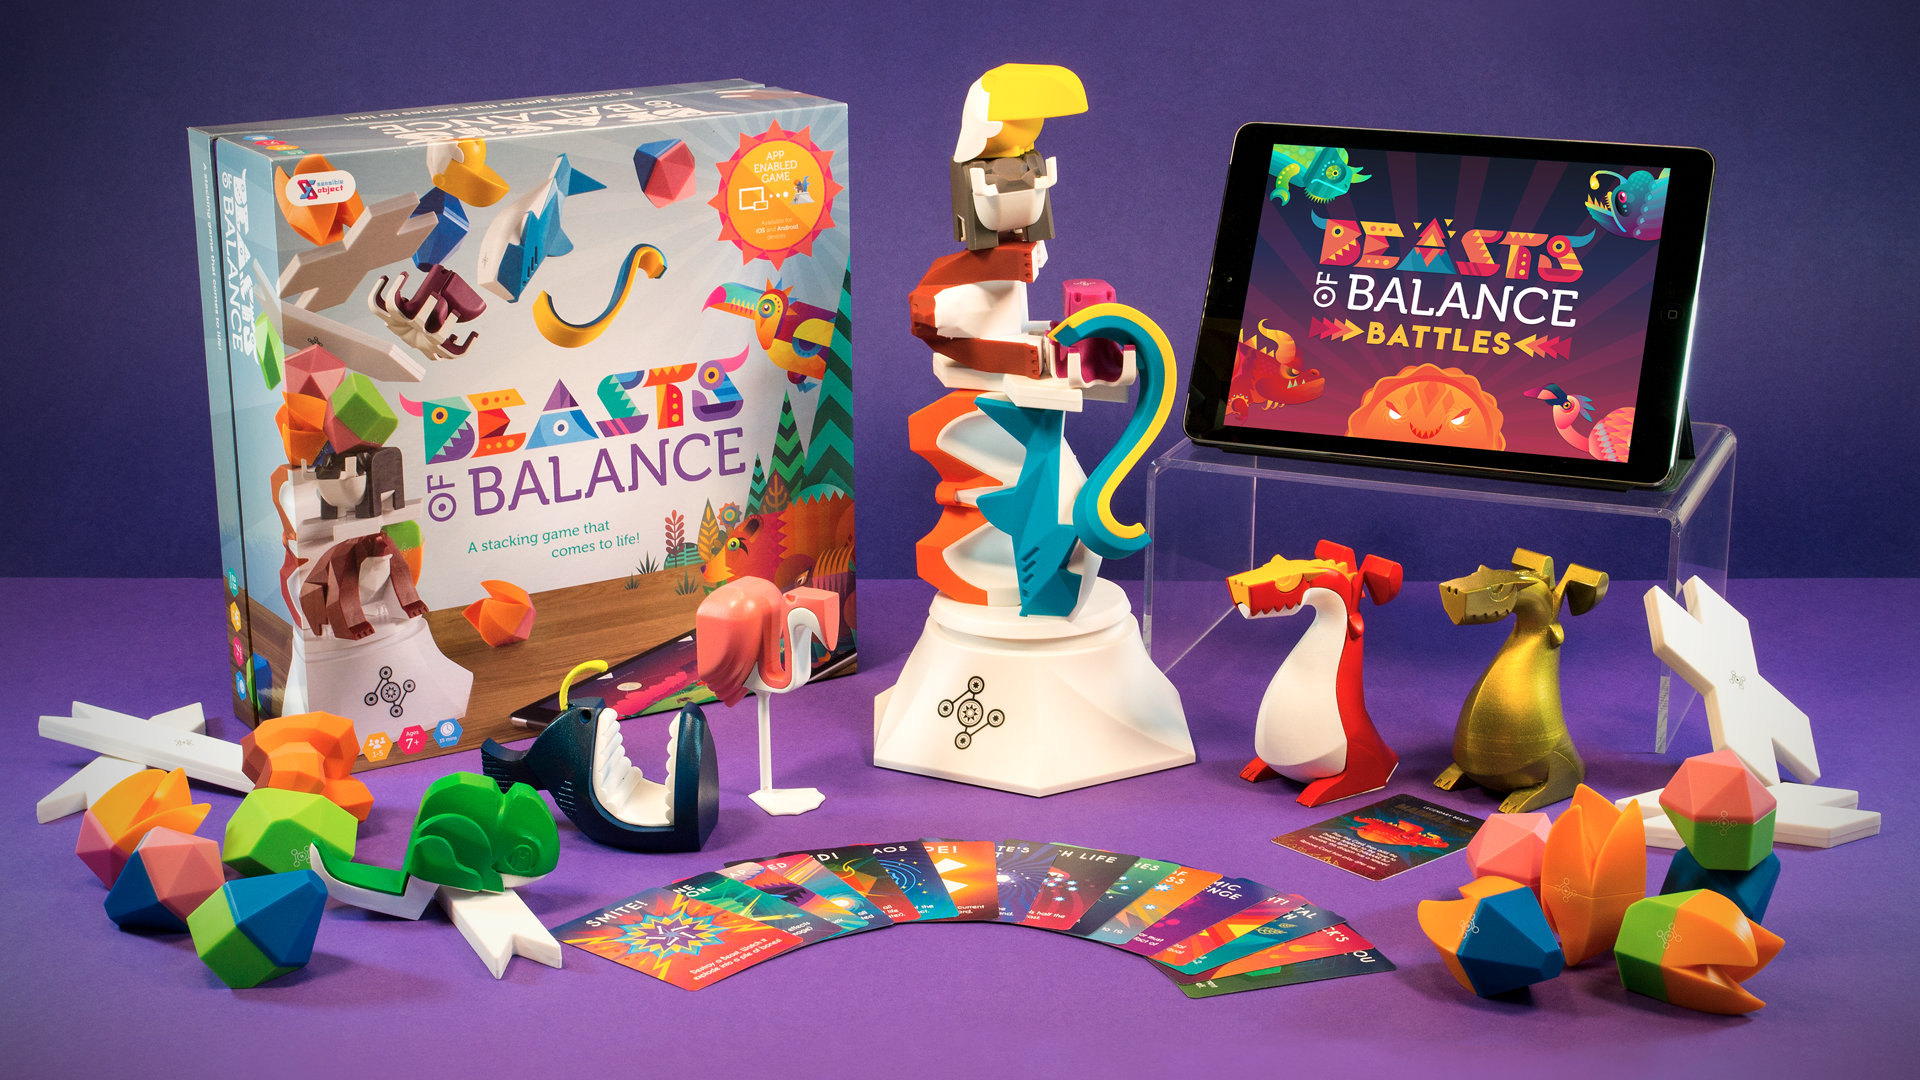 Game image Beast of Balance